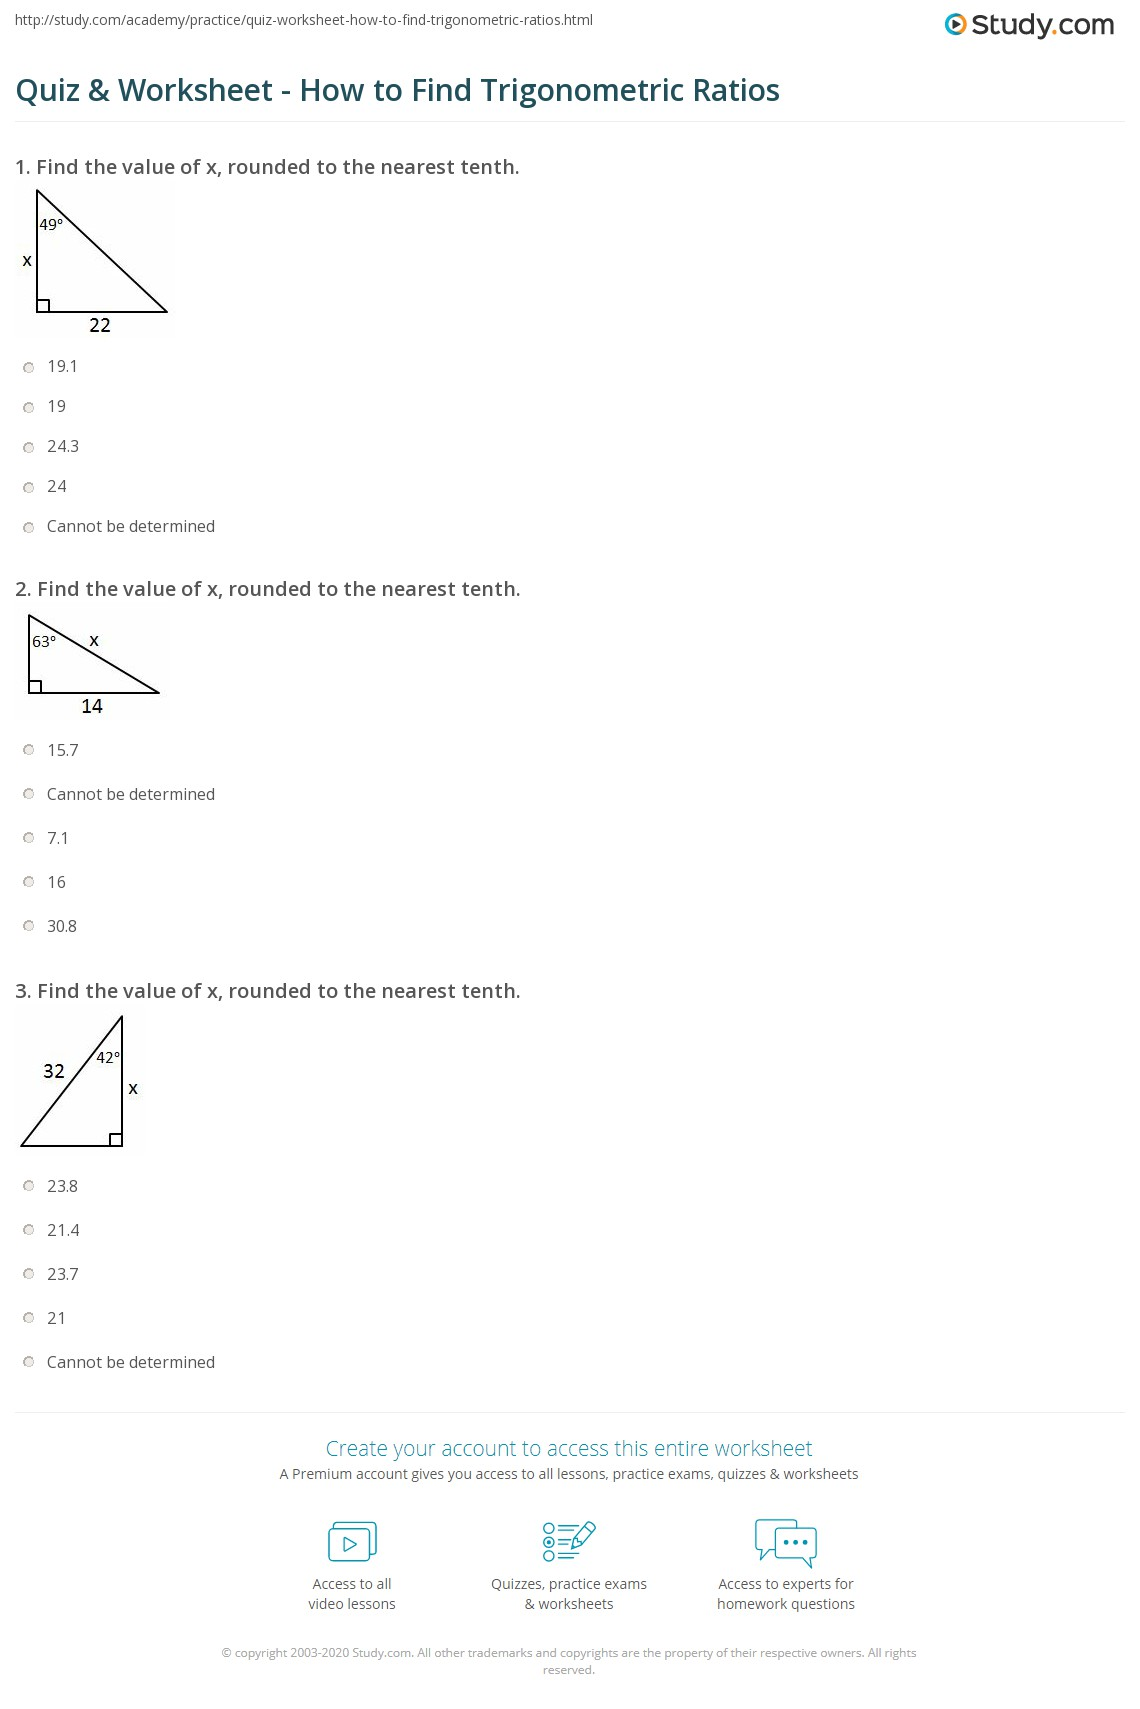 Quiz & Worksheet - How to Find Trigonometric Ratios | Study.com